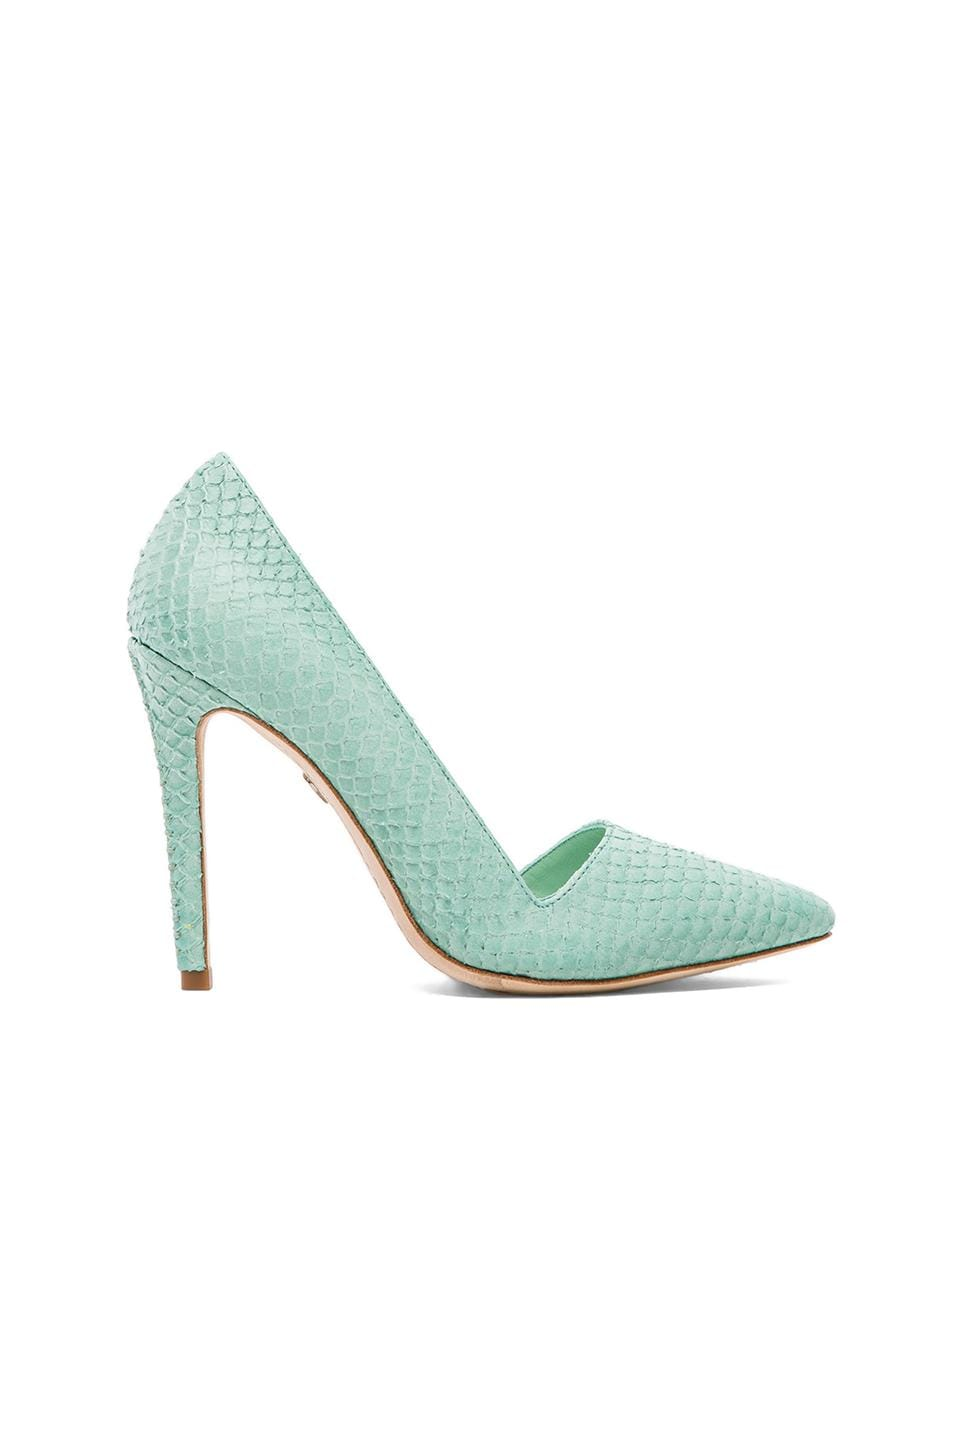 Alice + Olivia Dina Pump in Aqua